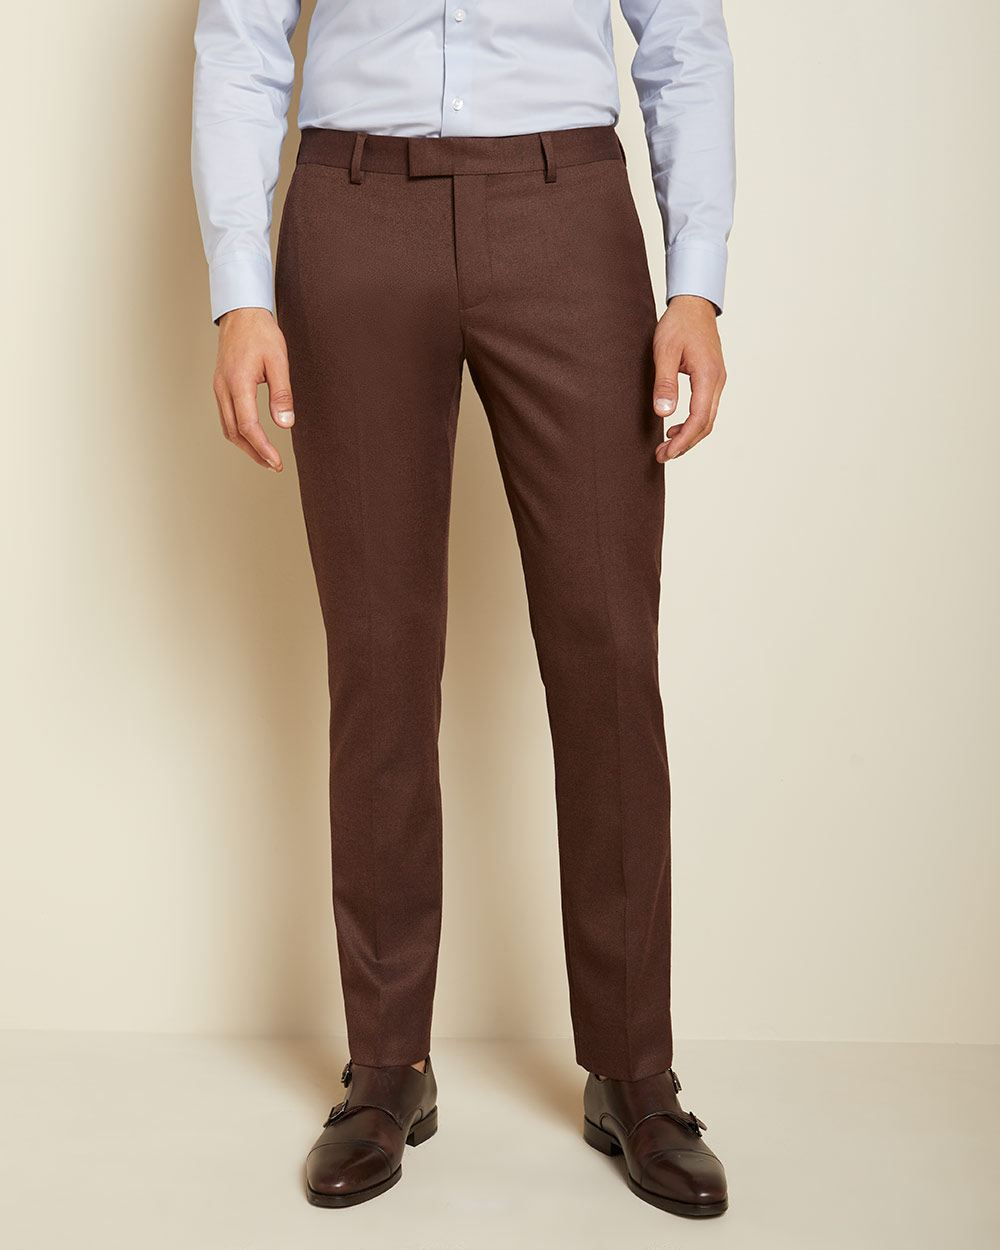 Slim fit twisted yarn 40-hour suit pant